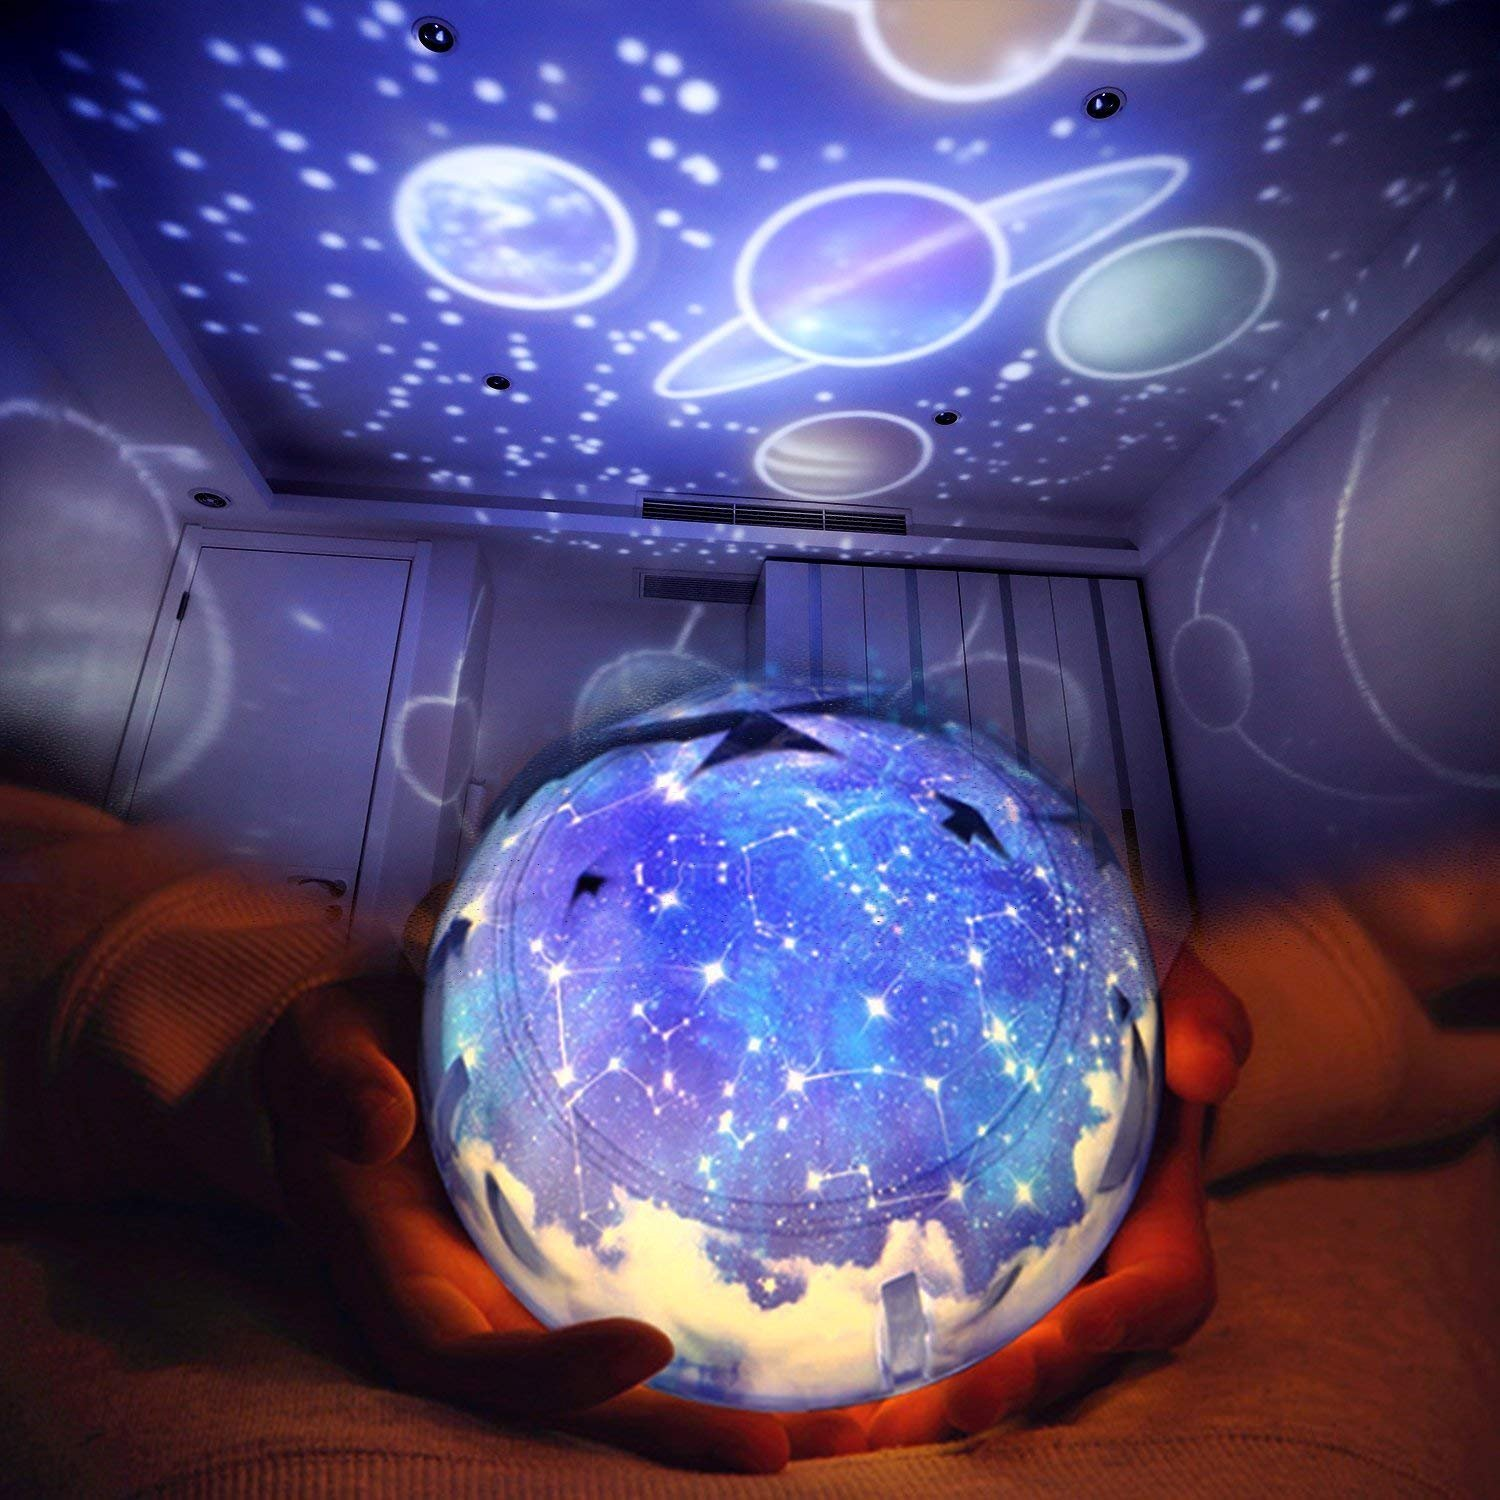 Luckoney Star Night Light for Children, Universe Projection Lamp for Kids' Bedroom, Romantic Rotating Star Sea LED Lamp for Baby Nursery, Best Birthday Christmas Gifts - 5 Sets of Film